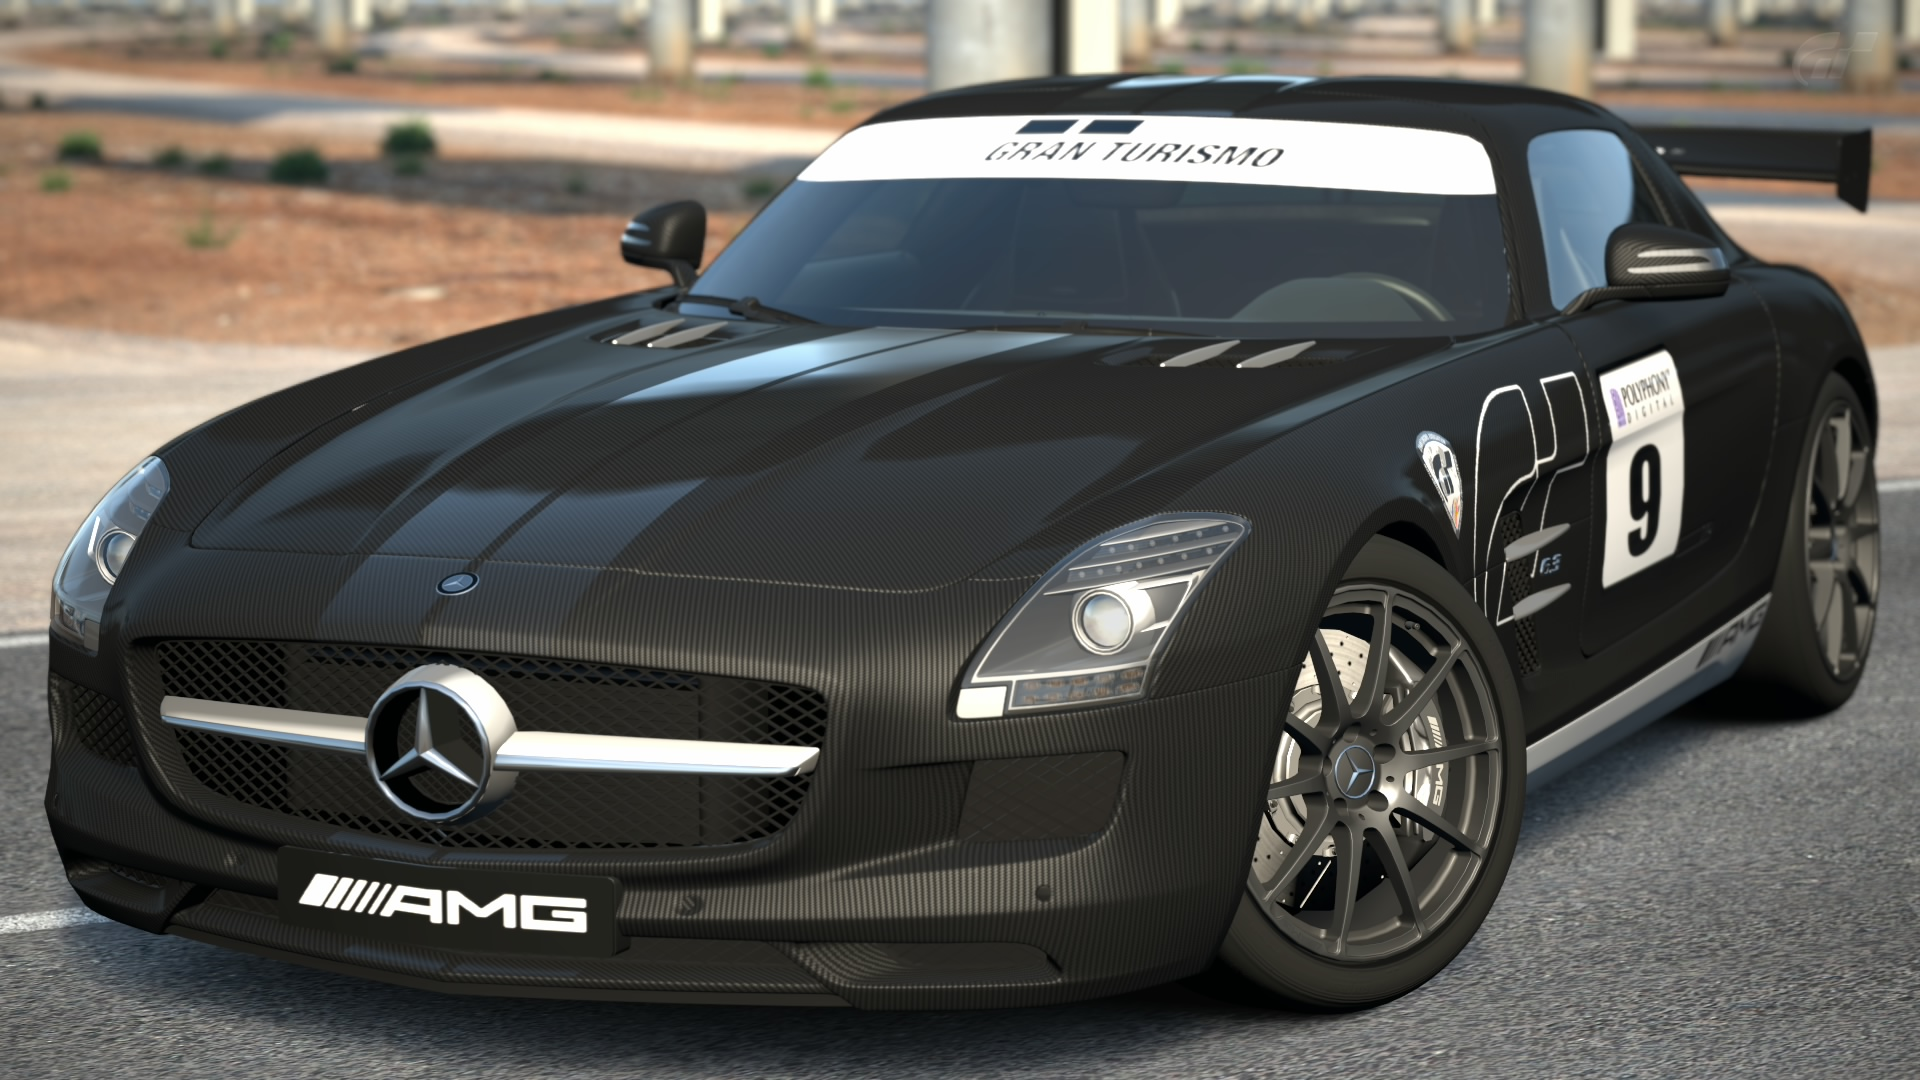 mercedes benz sls amg stealth model gran turismo wiki fandom powered by wikia. Black Bedroom Furniture Sets. Home Design Ideas